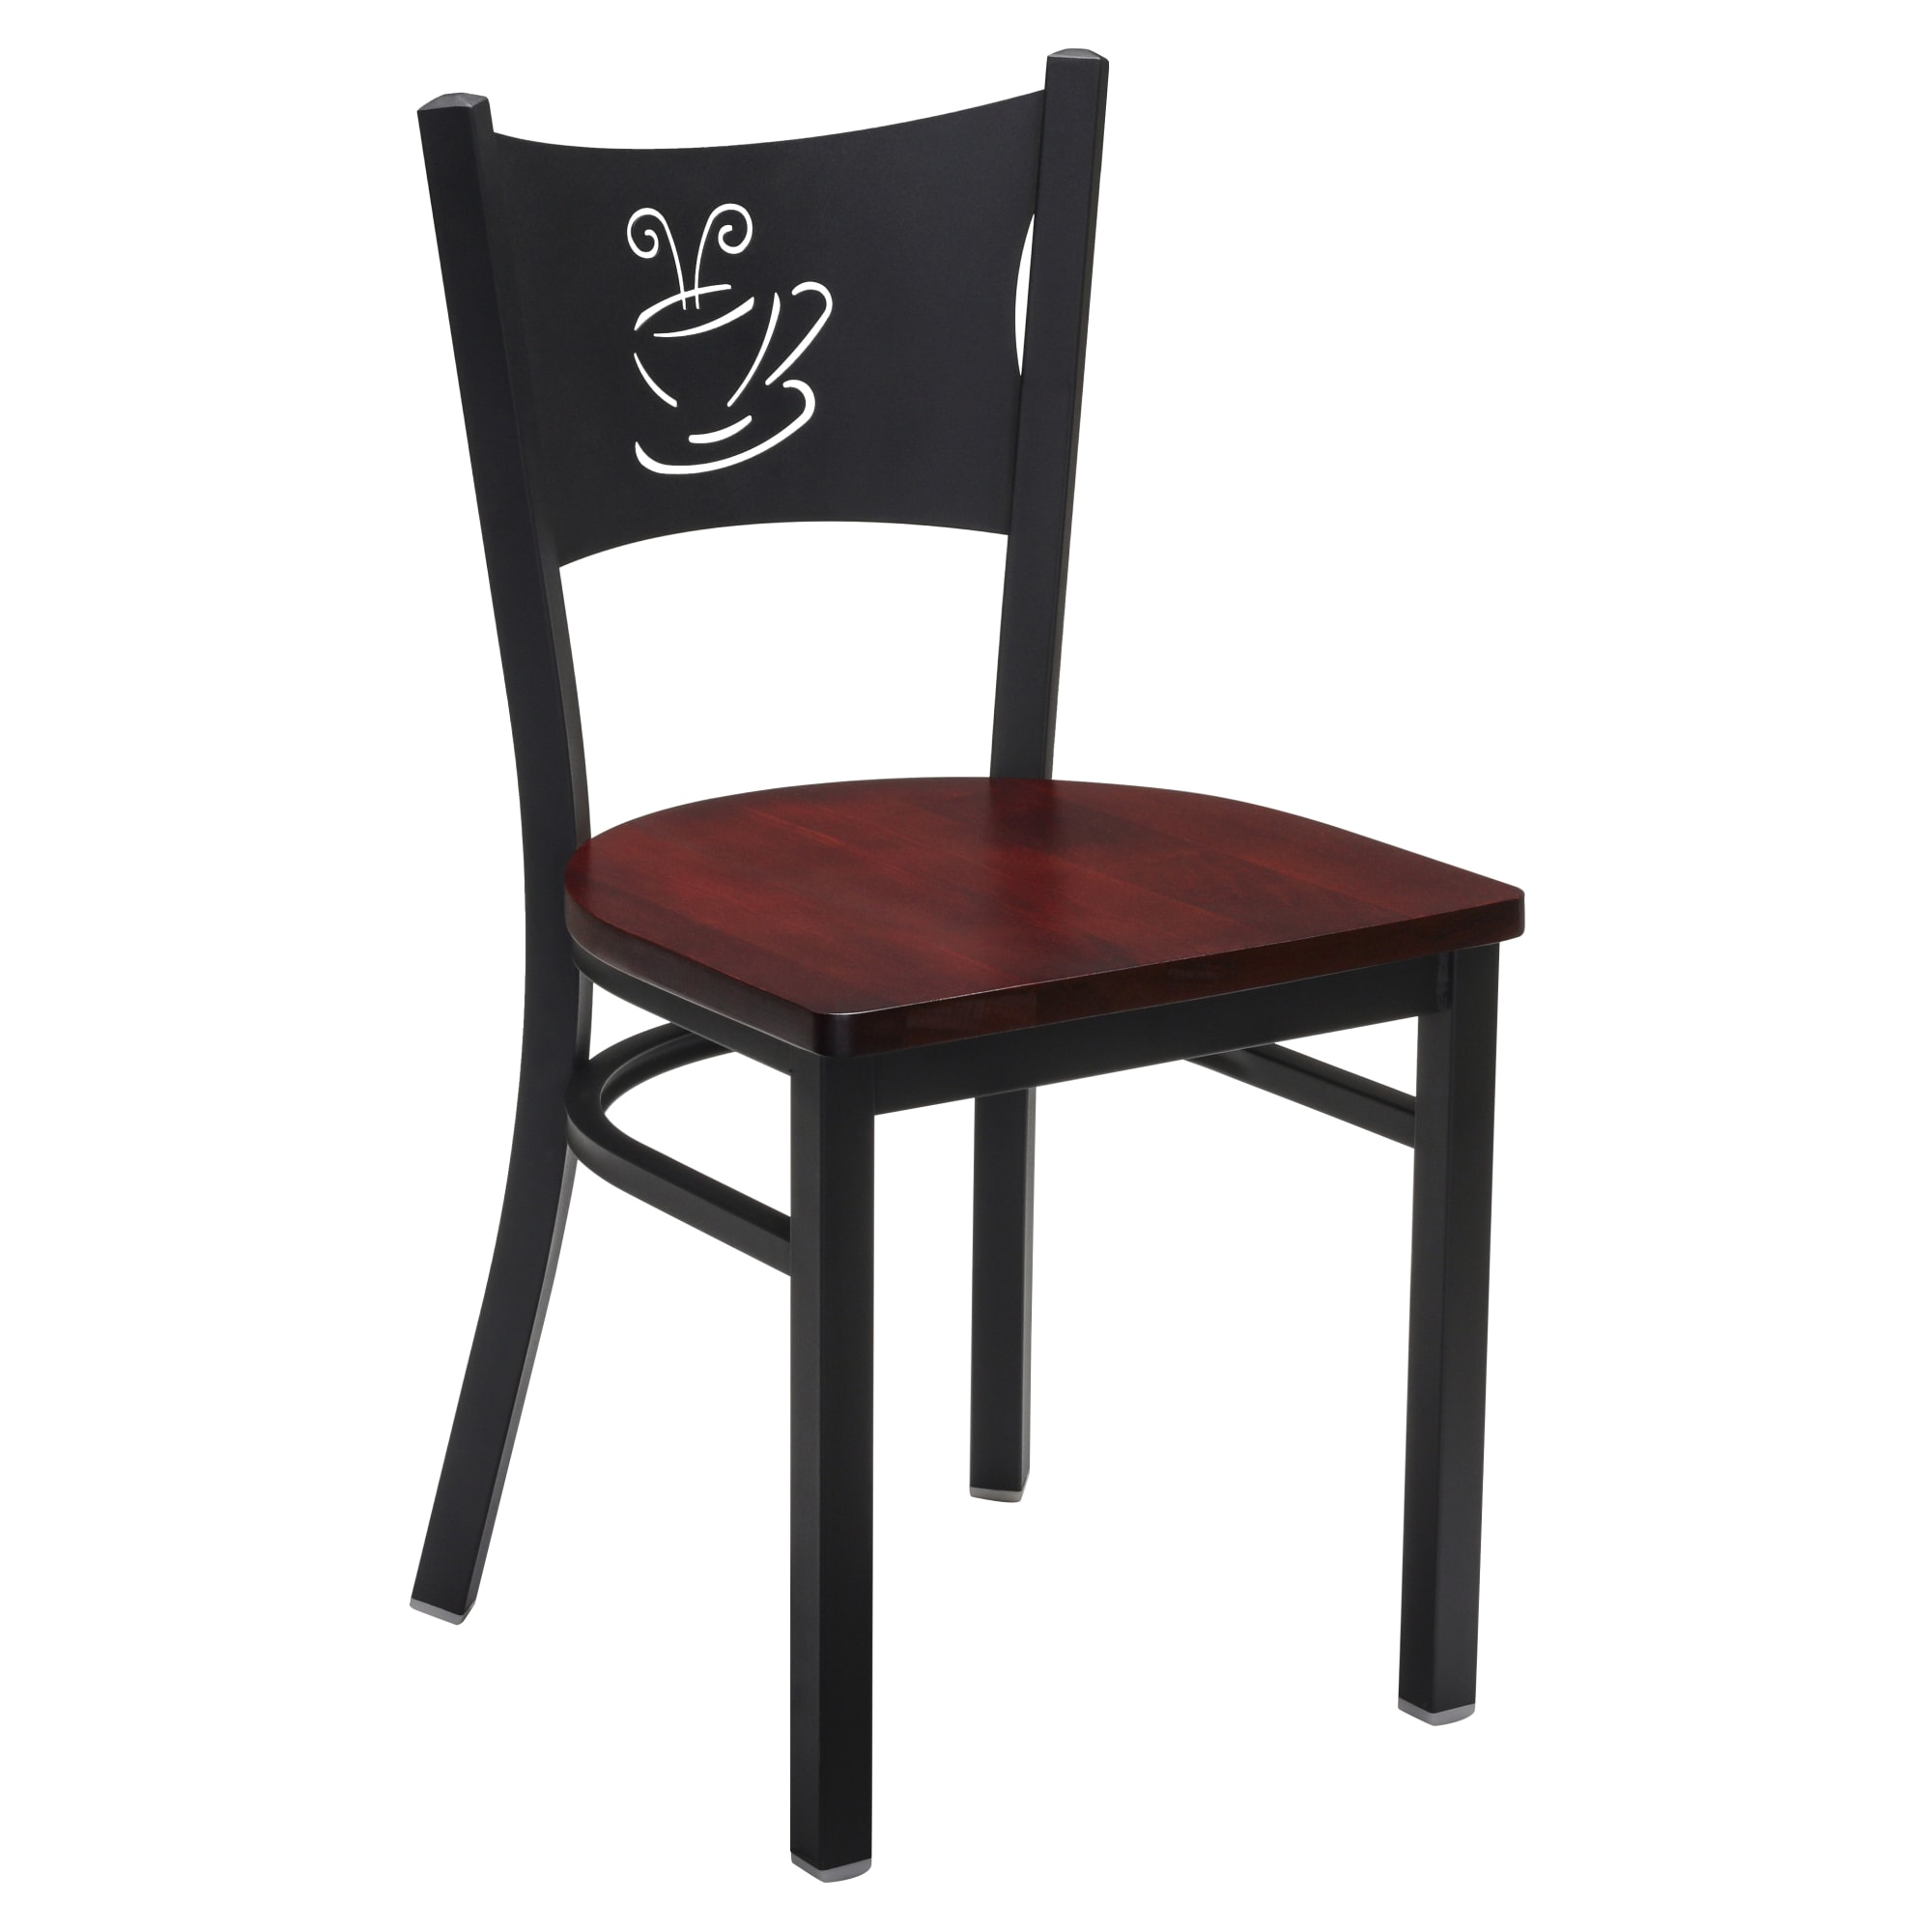 Cafe Metal Chair with Cafe Metal Chair